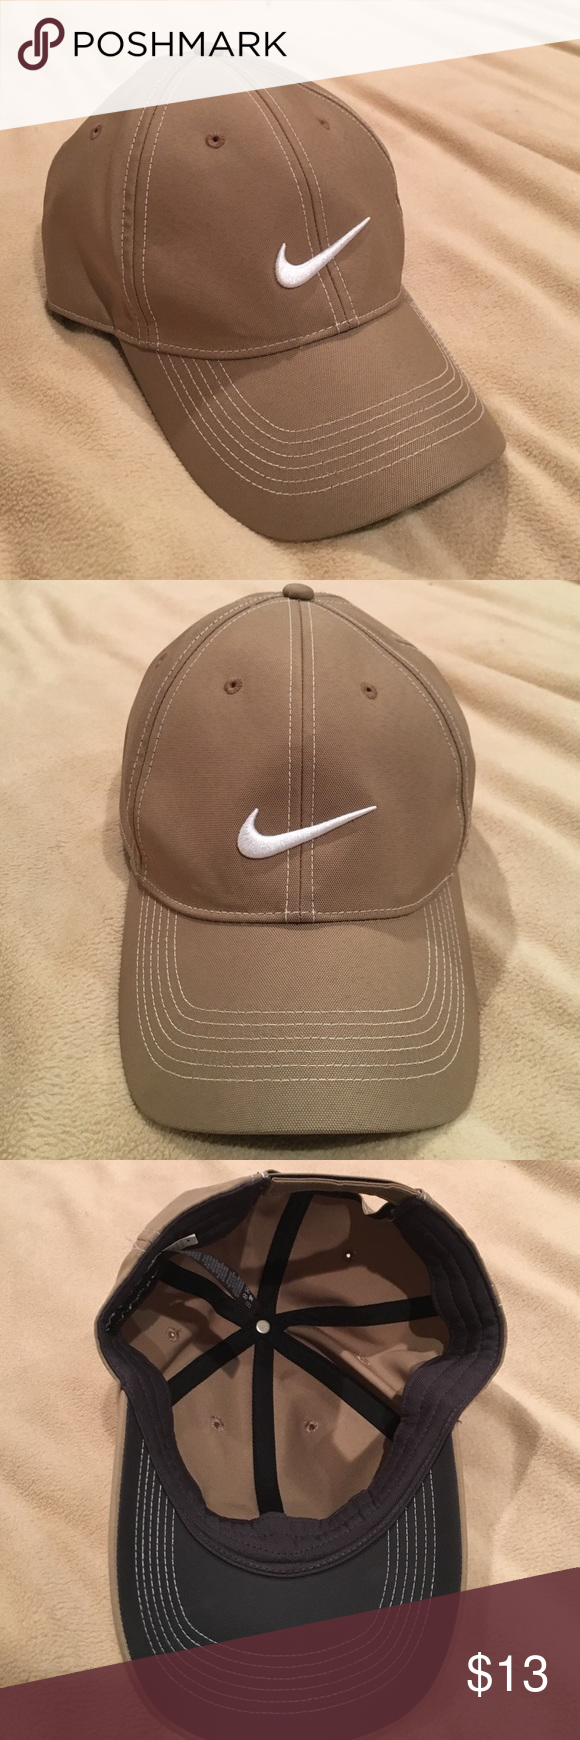 f264894c12 Tan Nike Golf Hat Brand new without tags